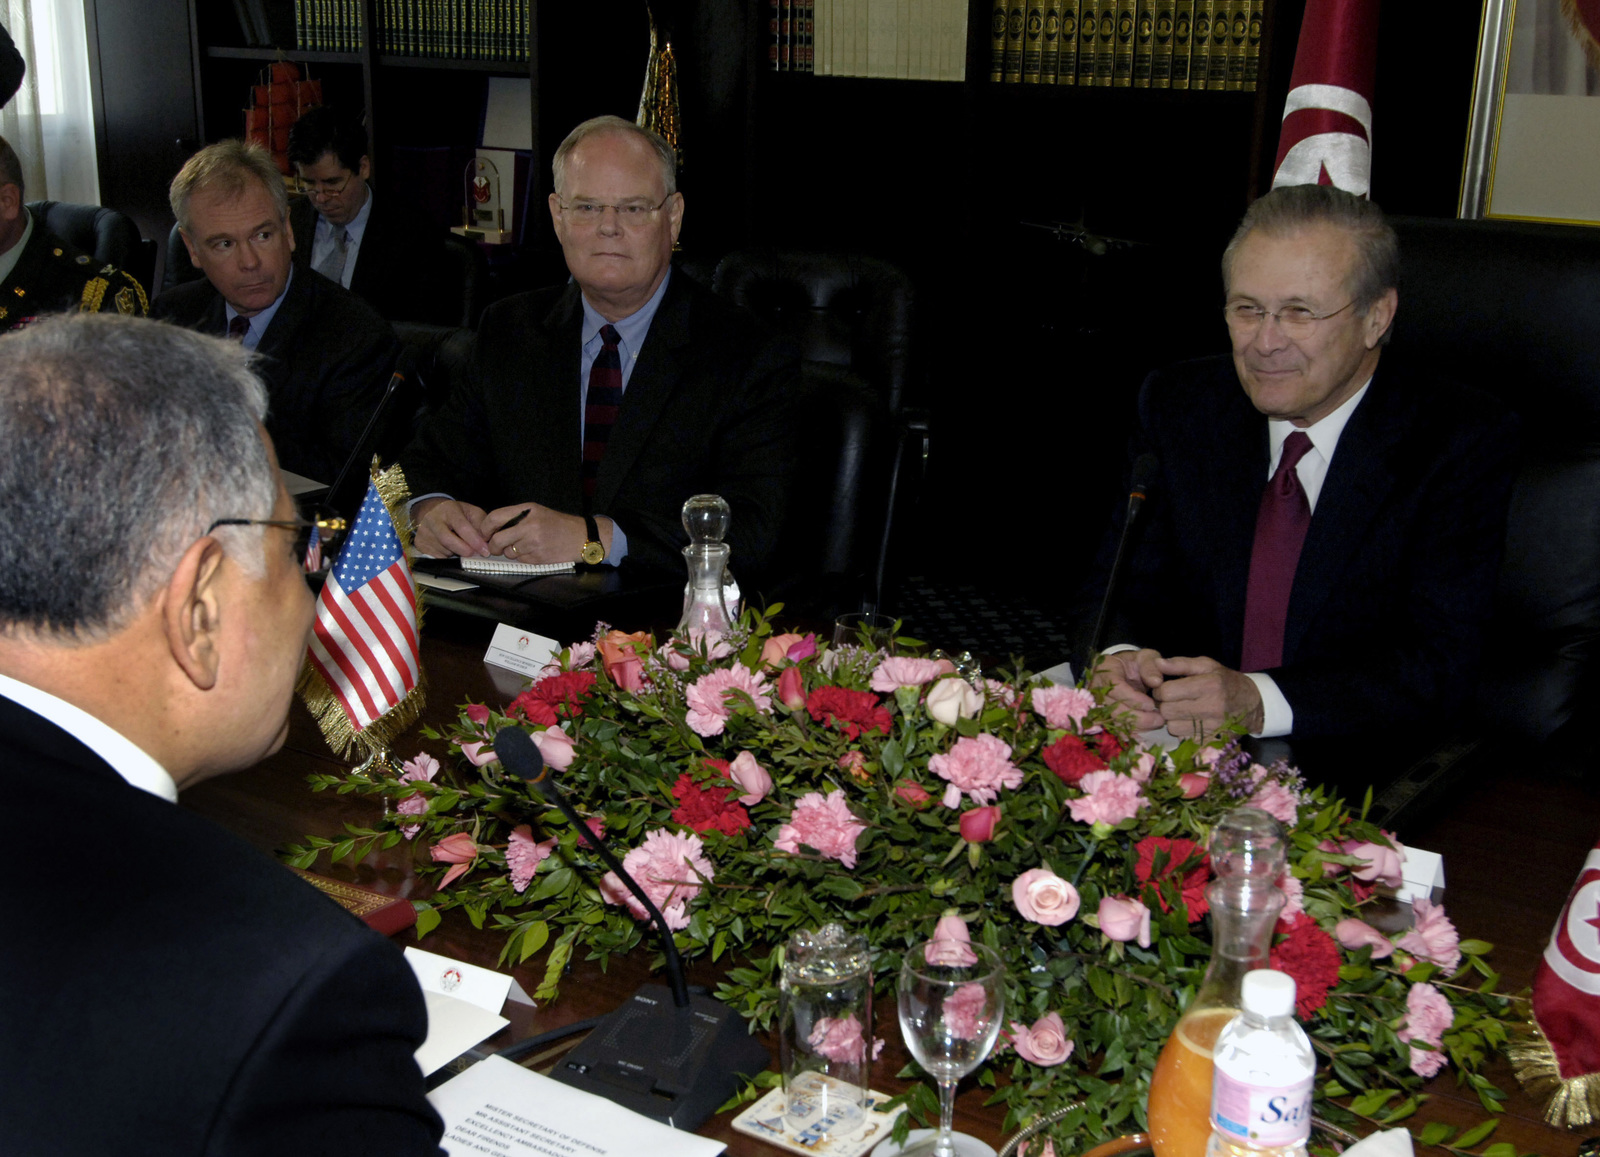 The Honorable Donald H. Rumsfeld, right, U.S. Secretary of Defense, and Tunisian Minister of Defense Kamel Morjane, left, hold a bilateral talk at Tunis, Tunisia, on Feb 11, 2006. Sec. Rumsfeld is on a tour of numerous North African countries after attending the North Atlantic Treaty Organization (NATO) Defense Minister Meeting in Italy. (DoD photo by PETTY Officer 1ST Class Chad J. McNeeley) (Released)